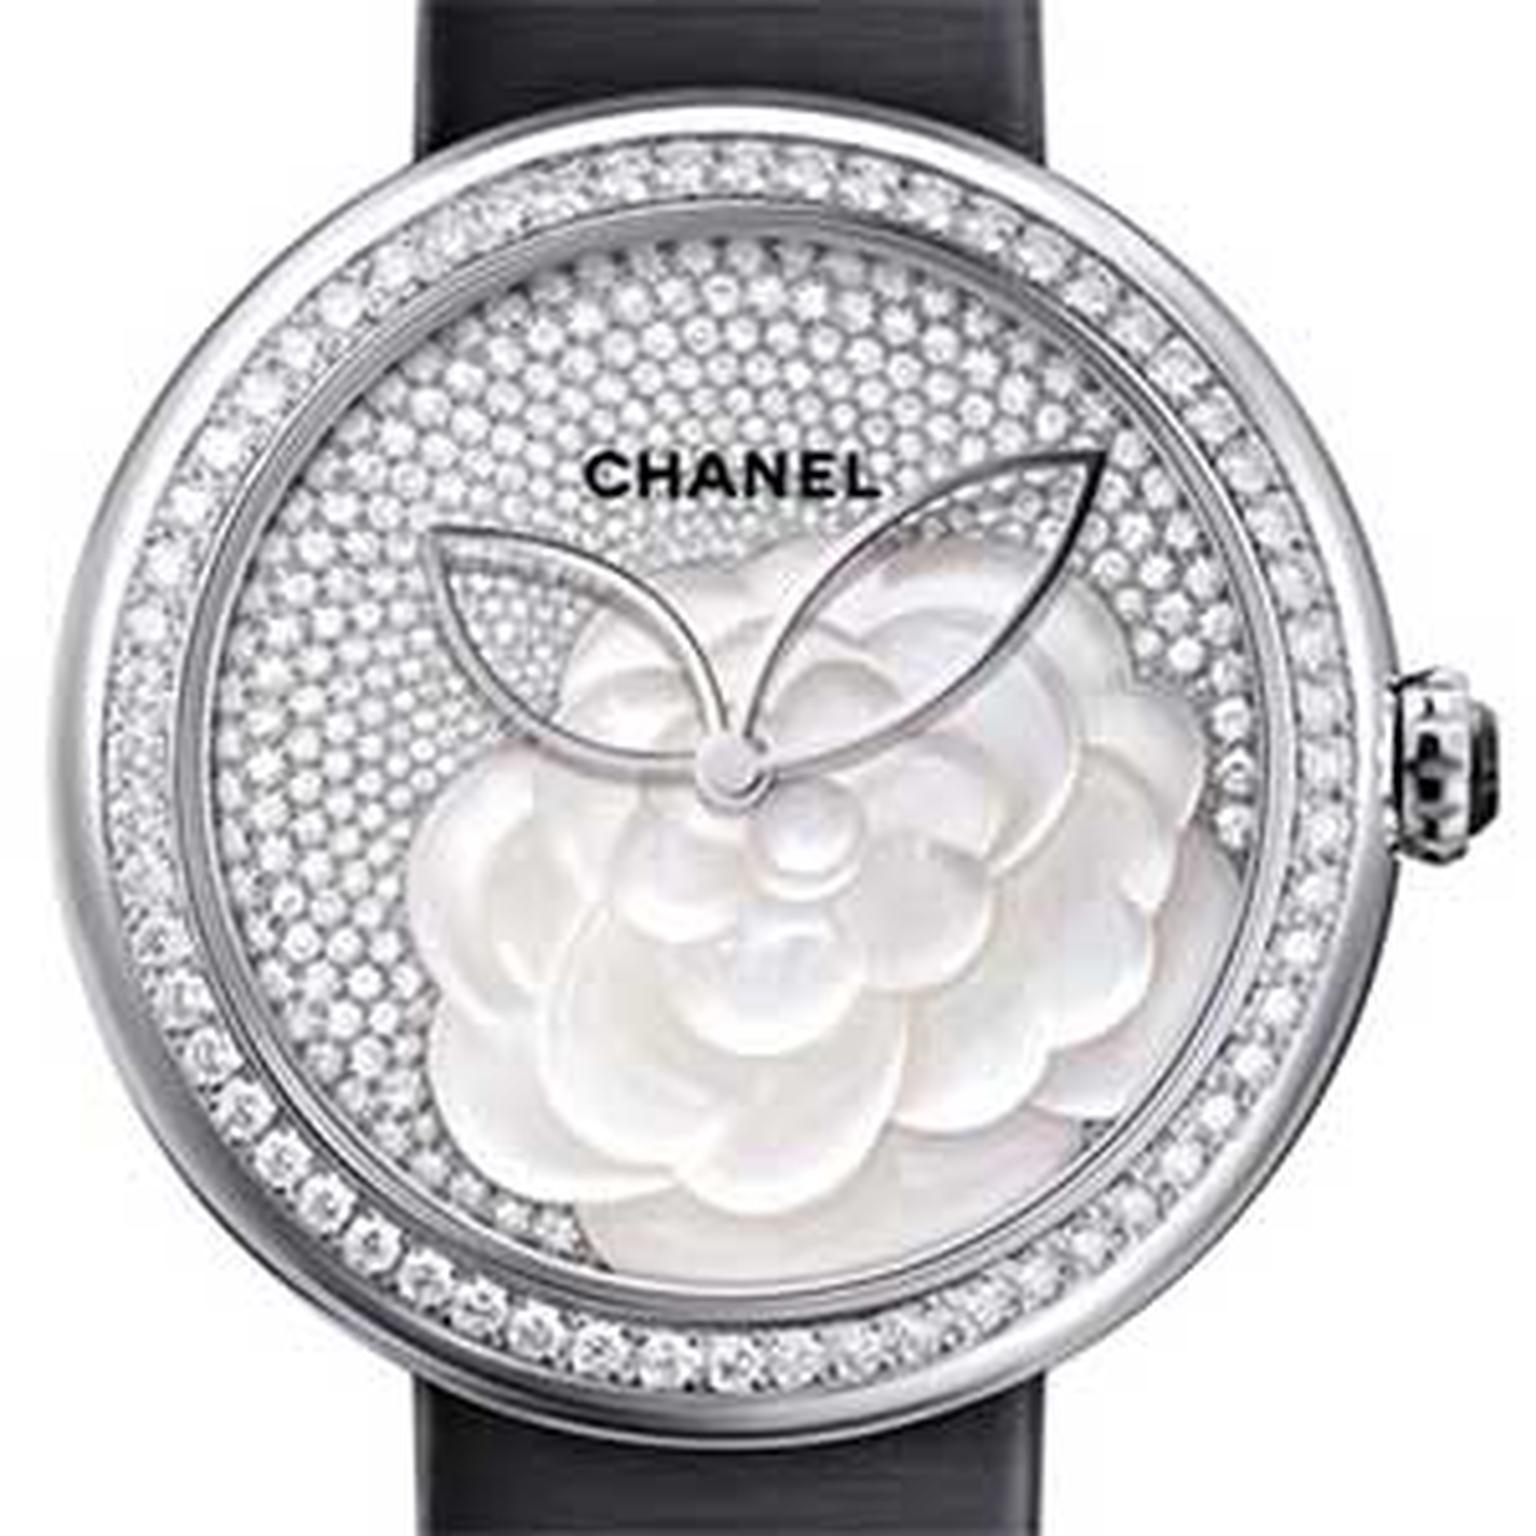 Chanel Camelia watch